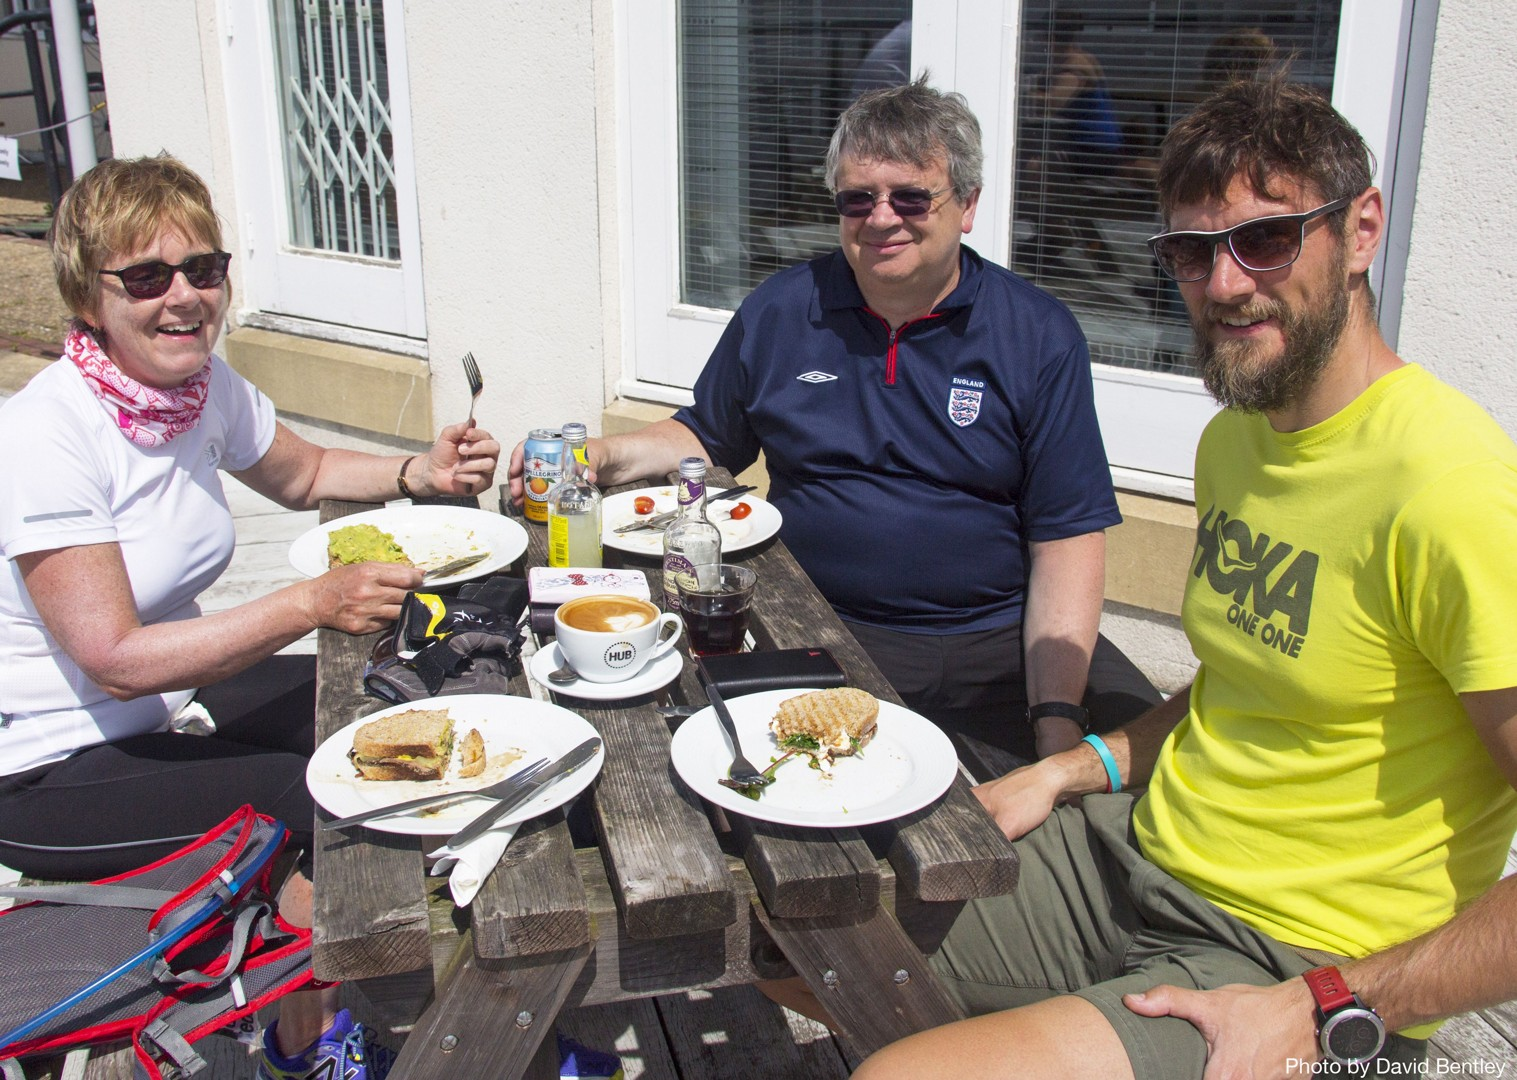 Supported-Leisure-Cycling-Holiday-Hadrians-Cycleway-UK-lunch-break.jpg - UK - Hadrian's Cycleway - Supported Leisure Cycling Holiday - Leisure Cycling